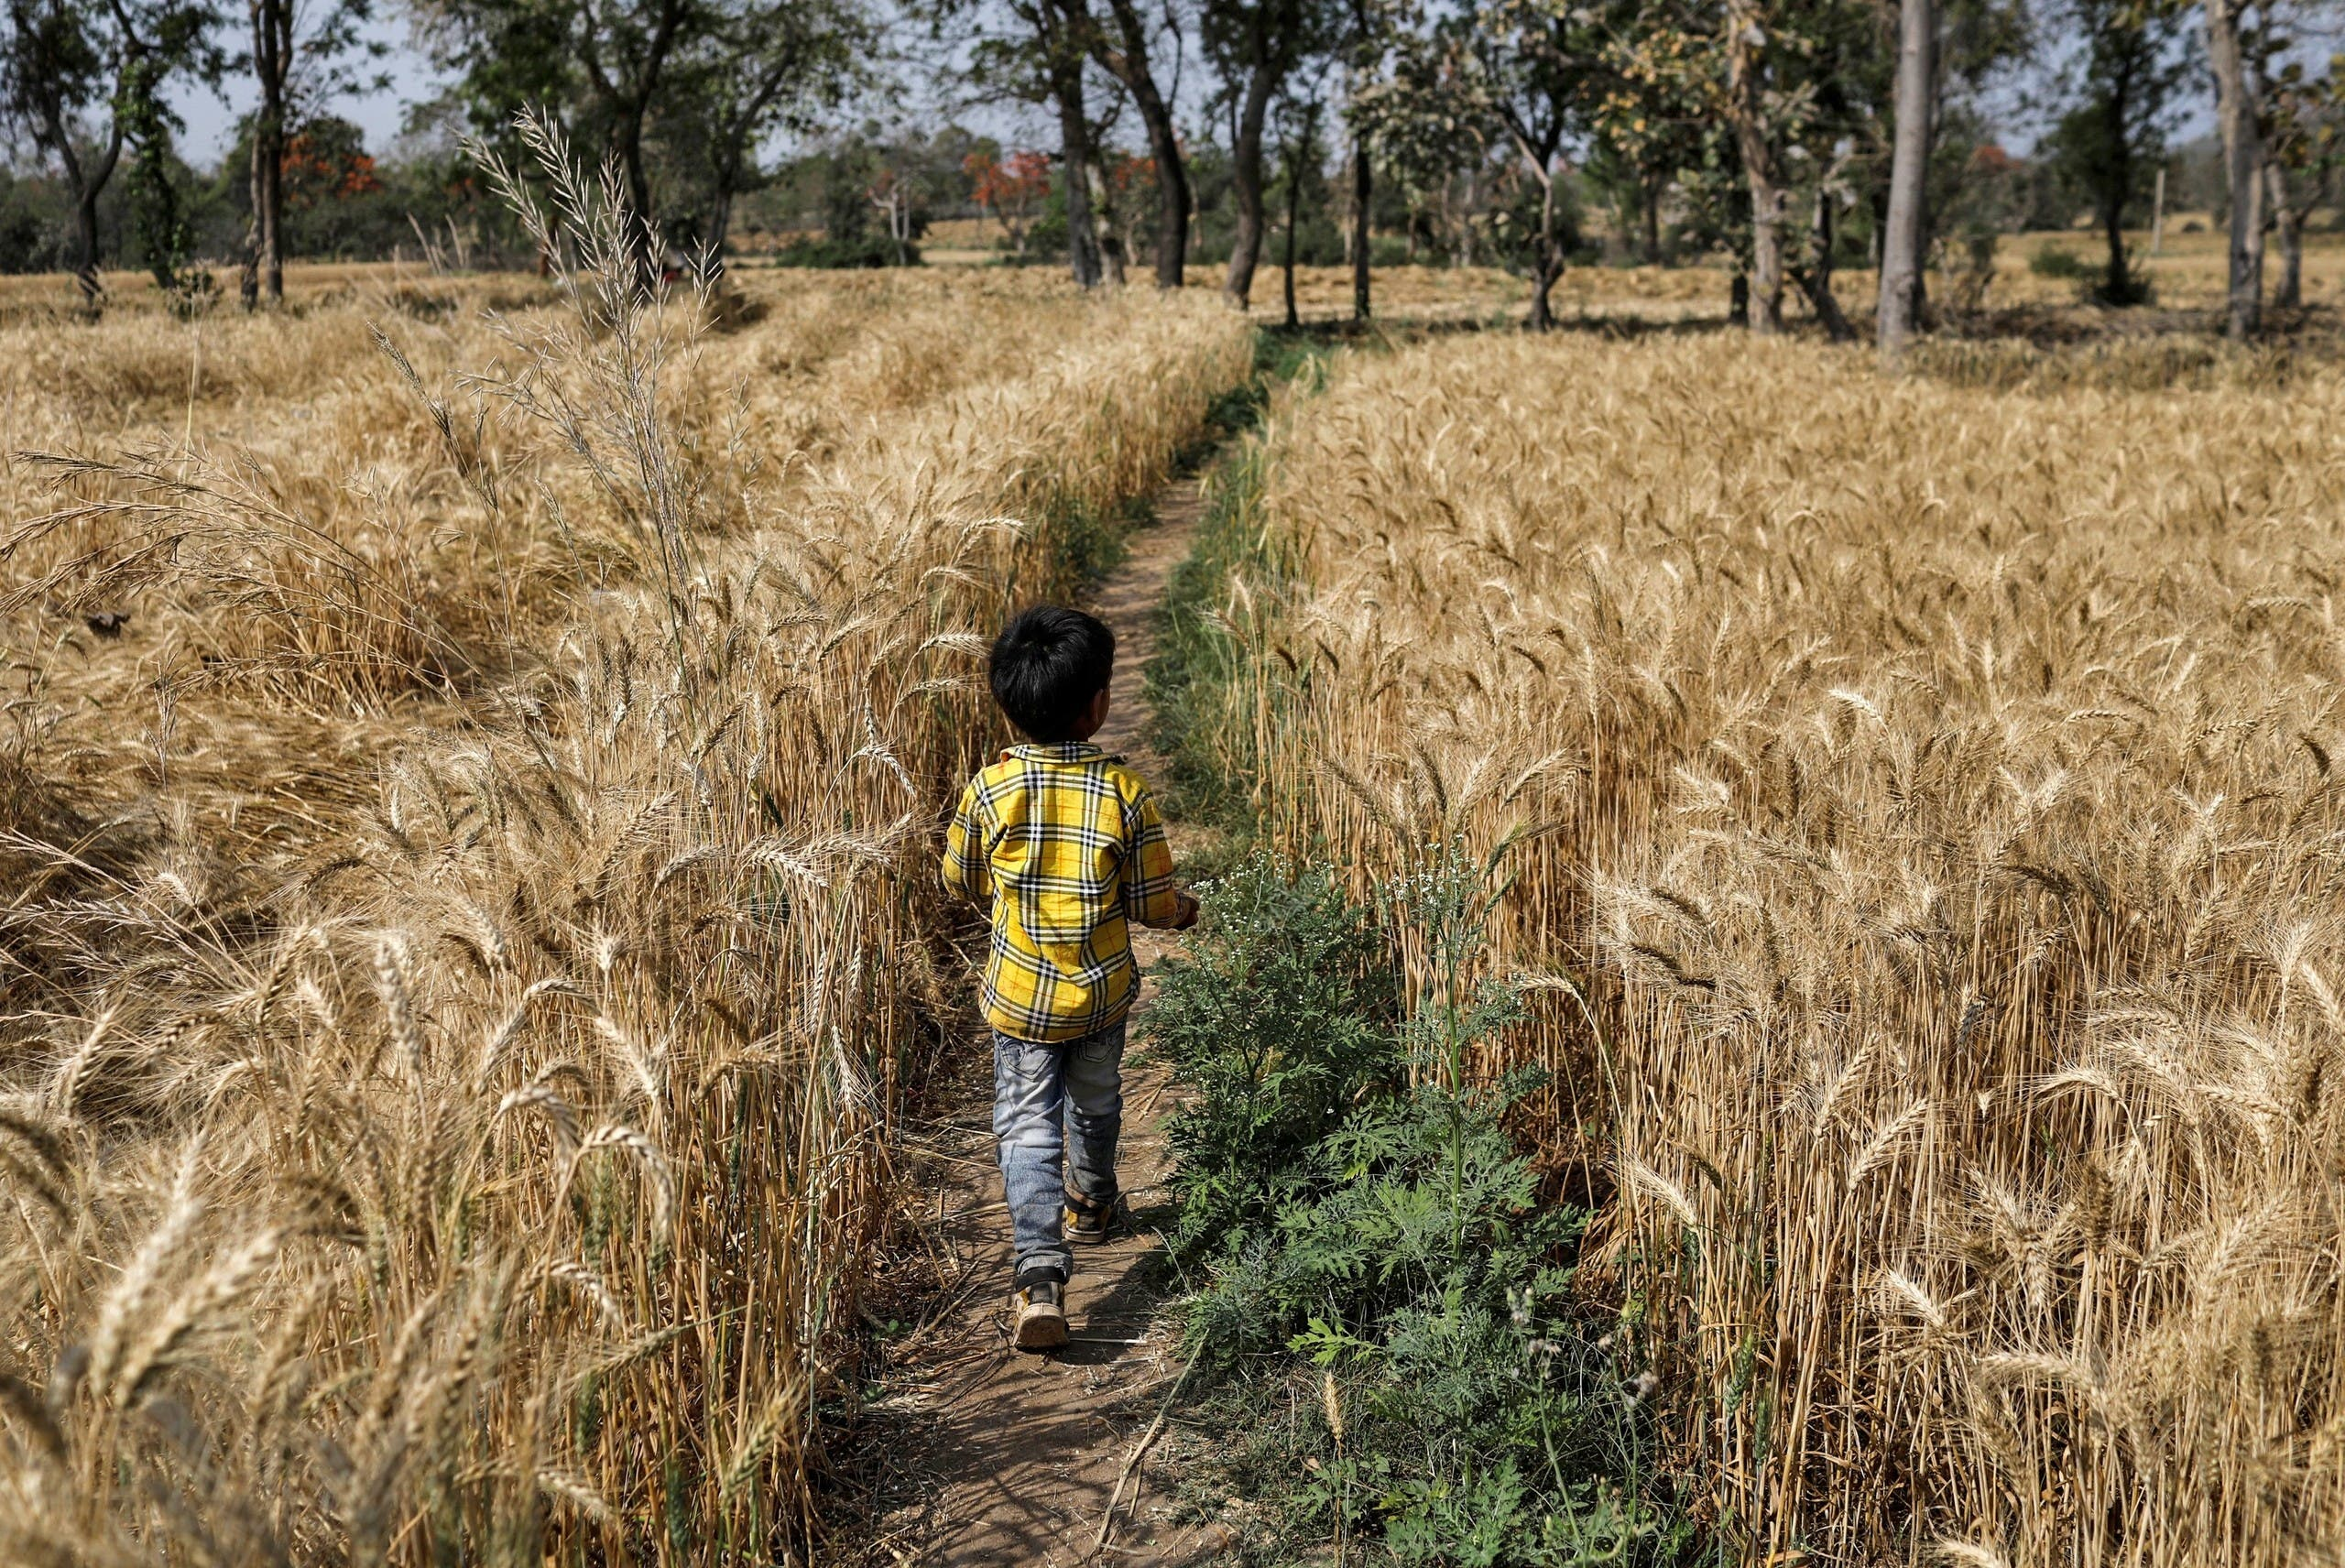 Shivam Kushwaha, son of Dayaram Kushwaha and Gyanvati, walks through a field during nationwide lockdown in India due to the coronavirus. (Reuters)